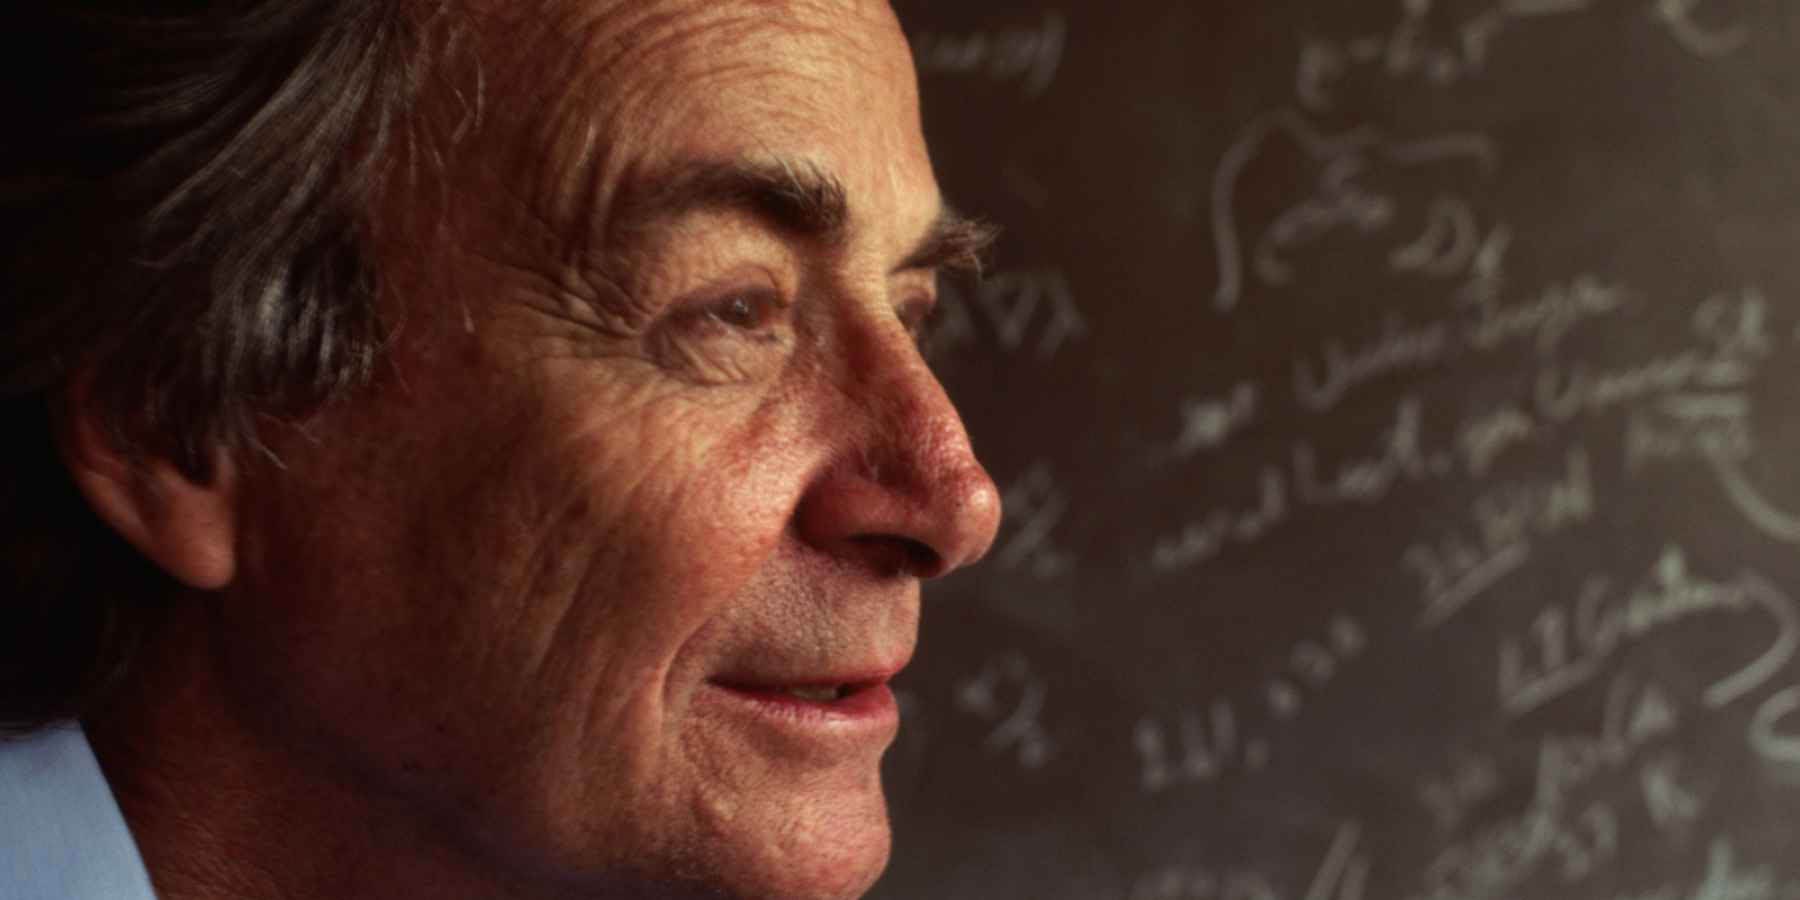 As one of the best ways to learn is by example, in this episode we spotlight the life of a real-world SuperLearner, Richard Feynman, theoretical physicist and Nobel-prize winner. Listen to this episode to find out about a man who, using SuperLearning, changed the world in various disciplines.